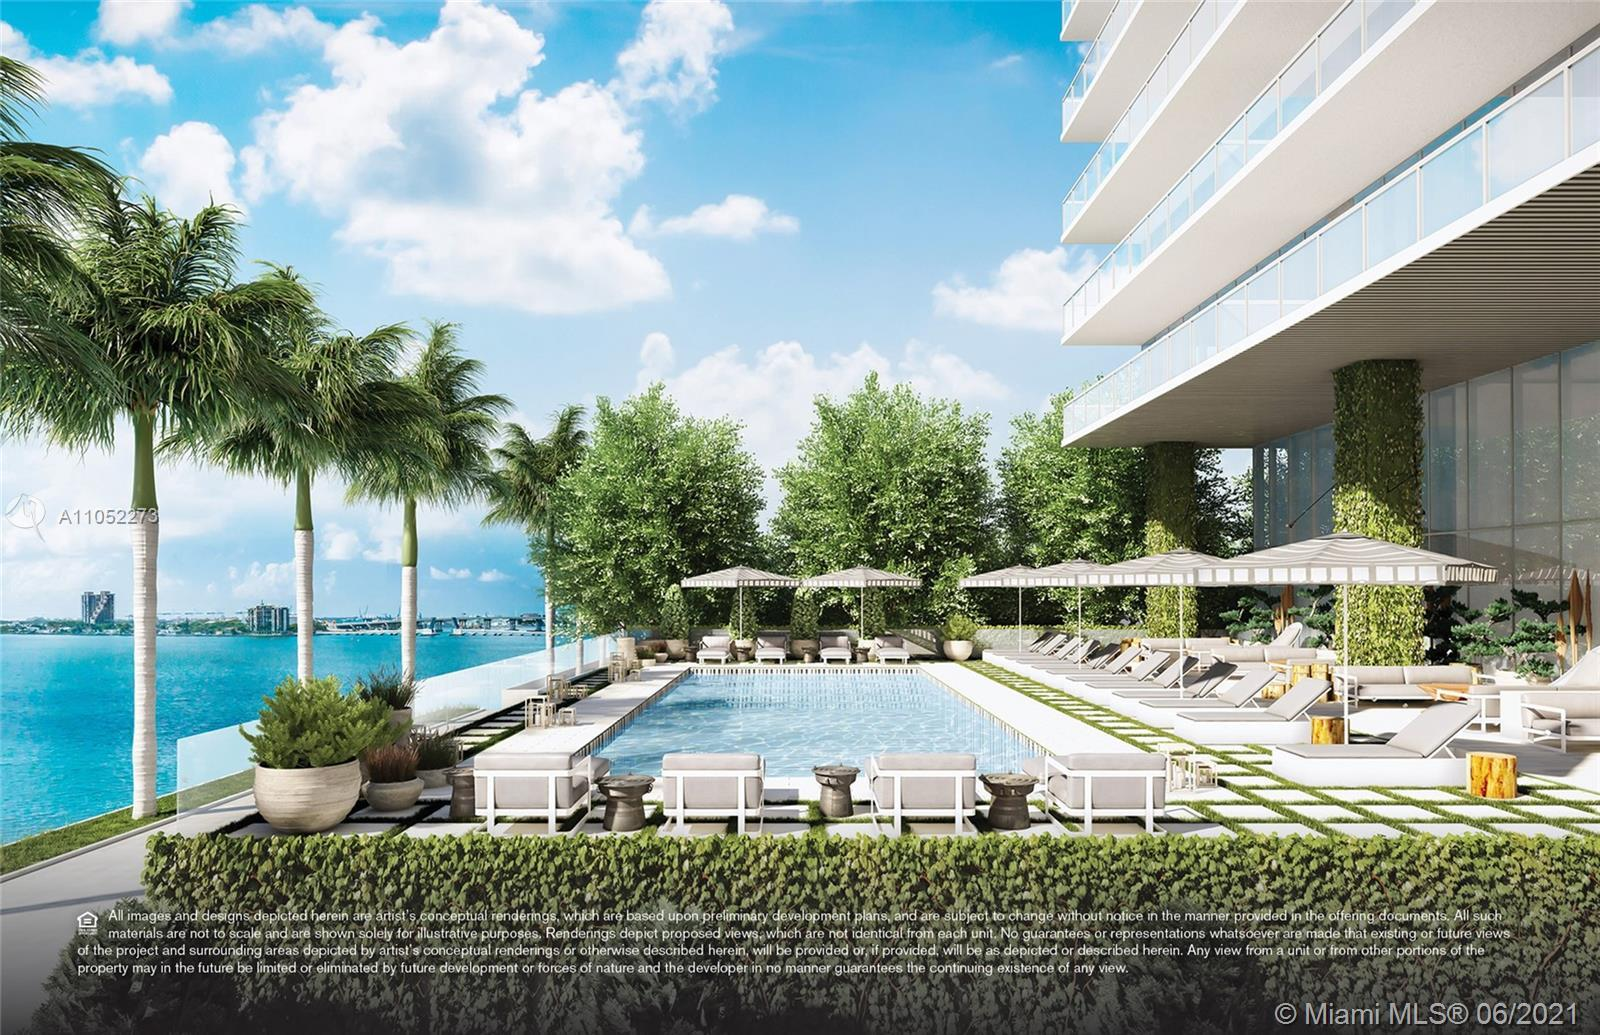 Upper tier residence at Elysee, the first luxury boutique building in Edgewater. Offering 4B/4.5b +D